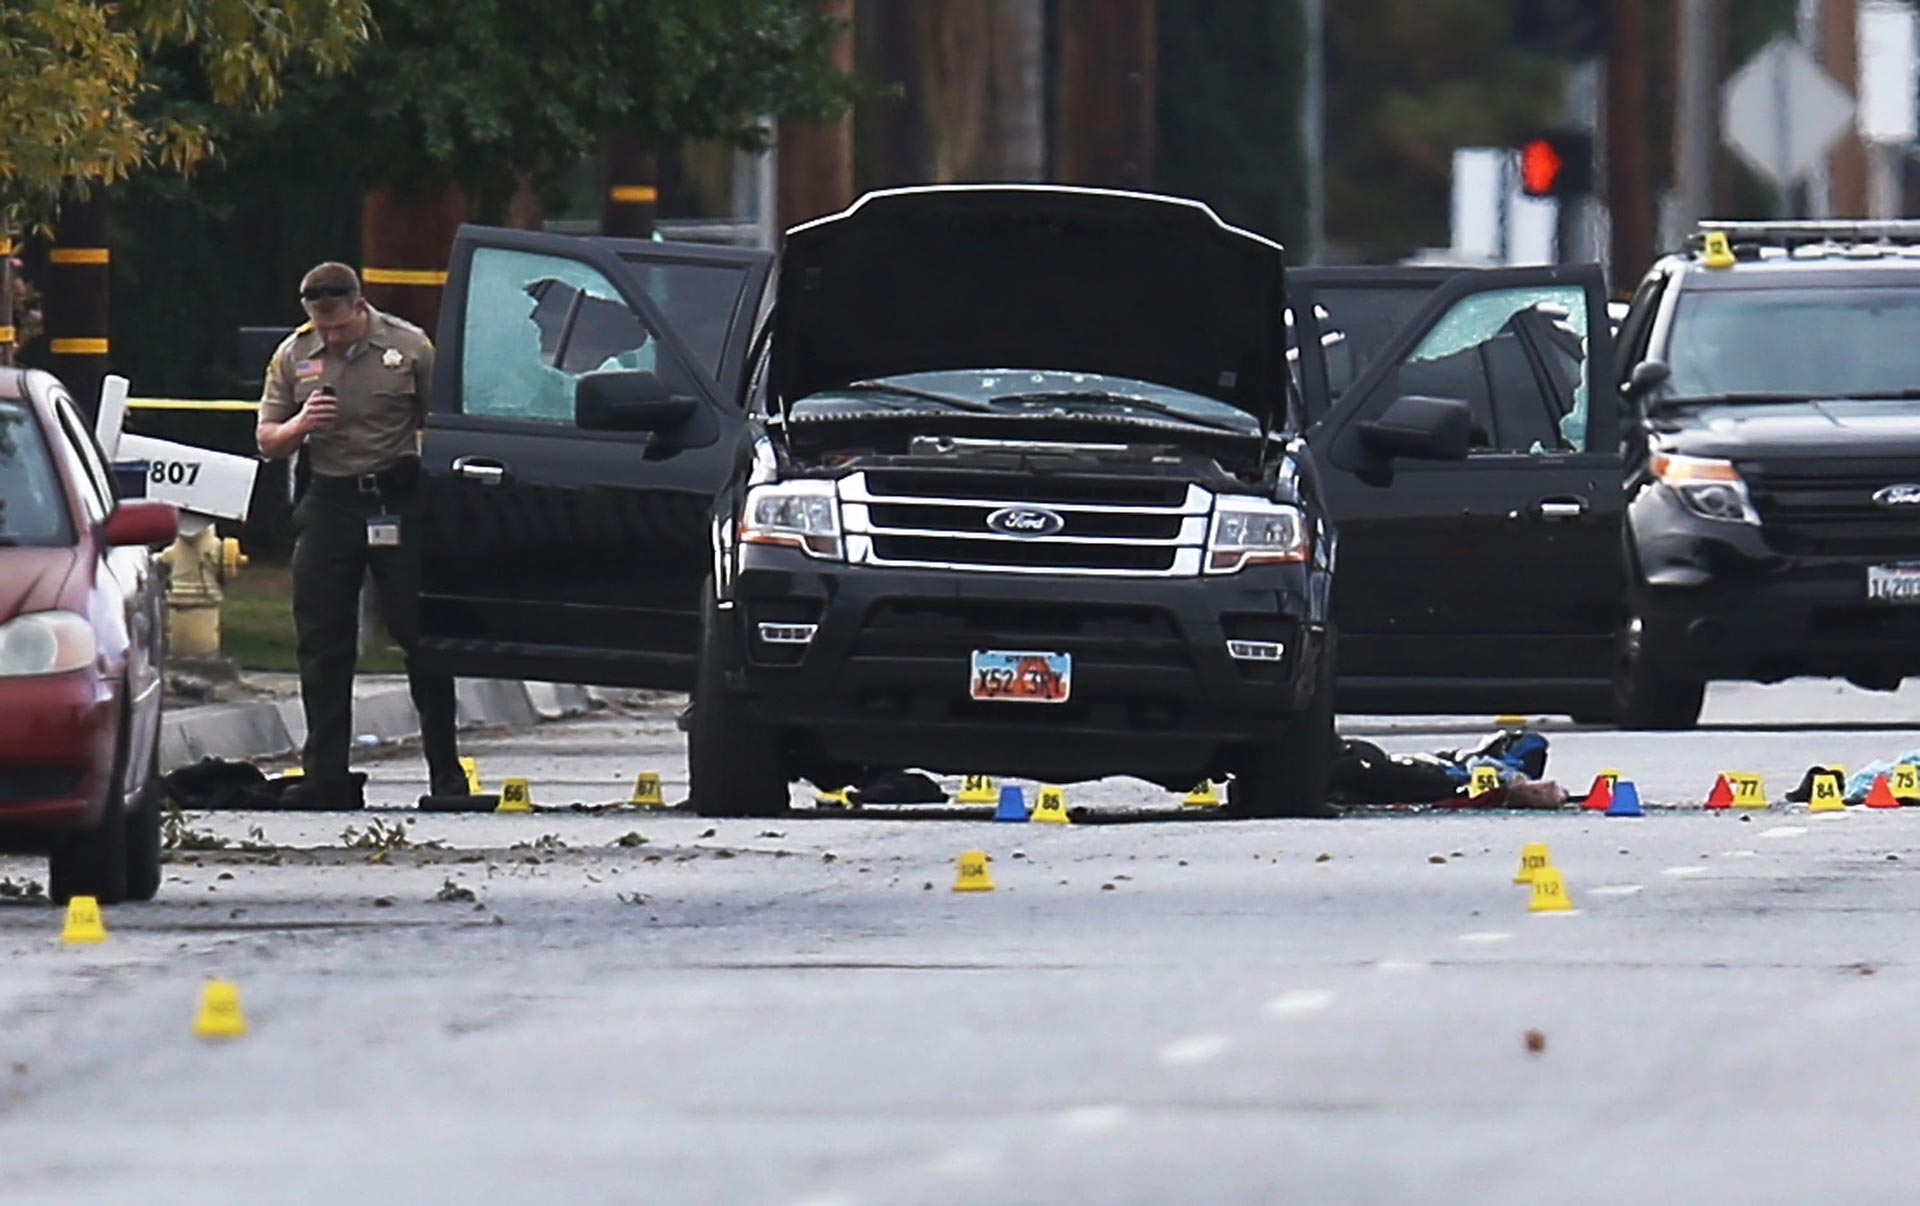 Law enforcement officials investigate around the SUV vehicle where suspects of the shooting at the Inland Regional Center were killed on December 3, 2015 in San Bernardino.